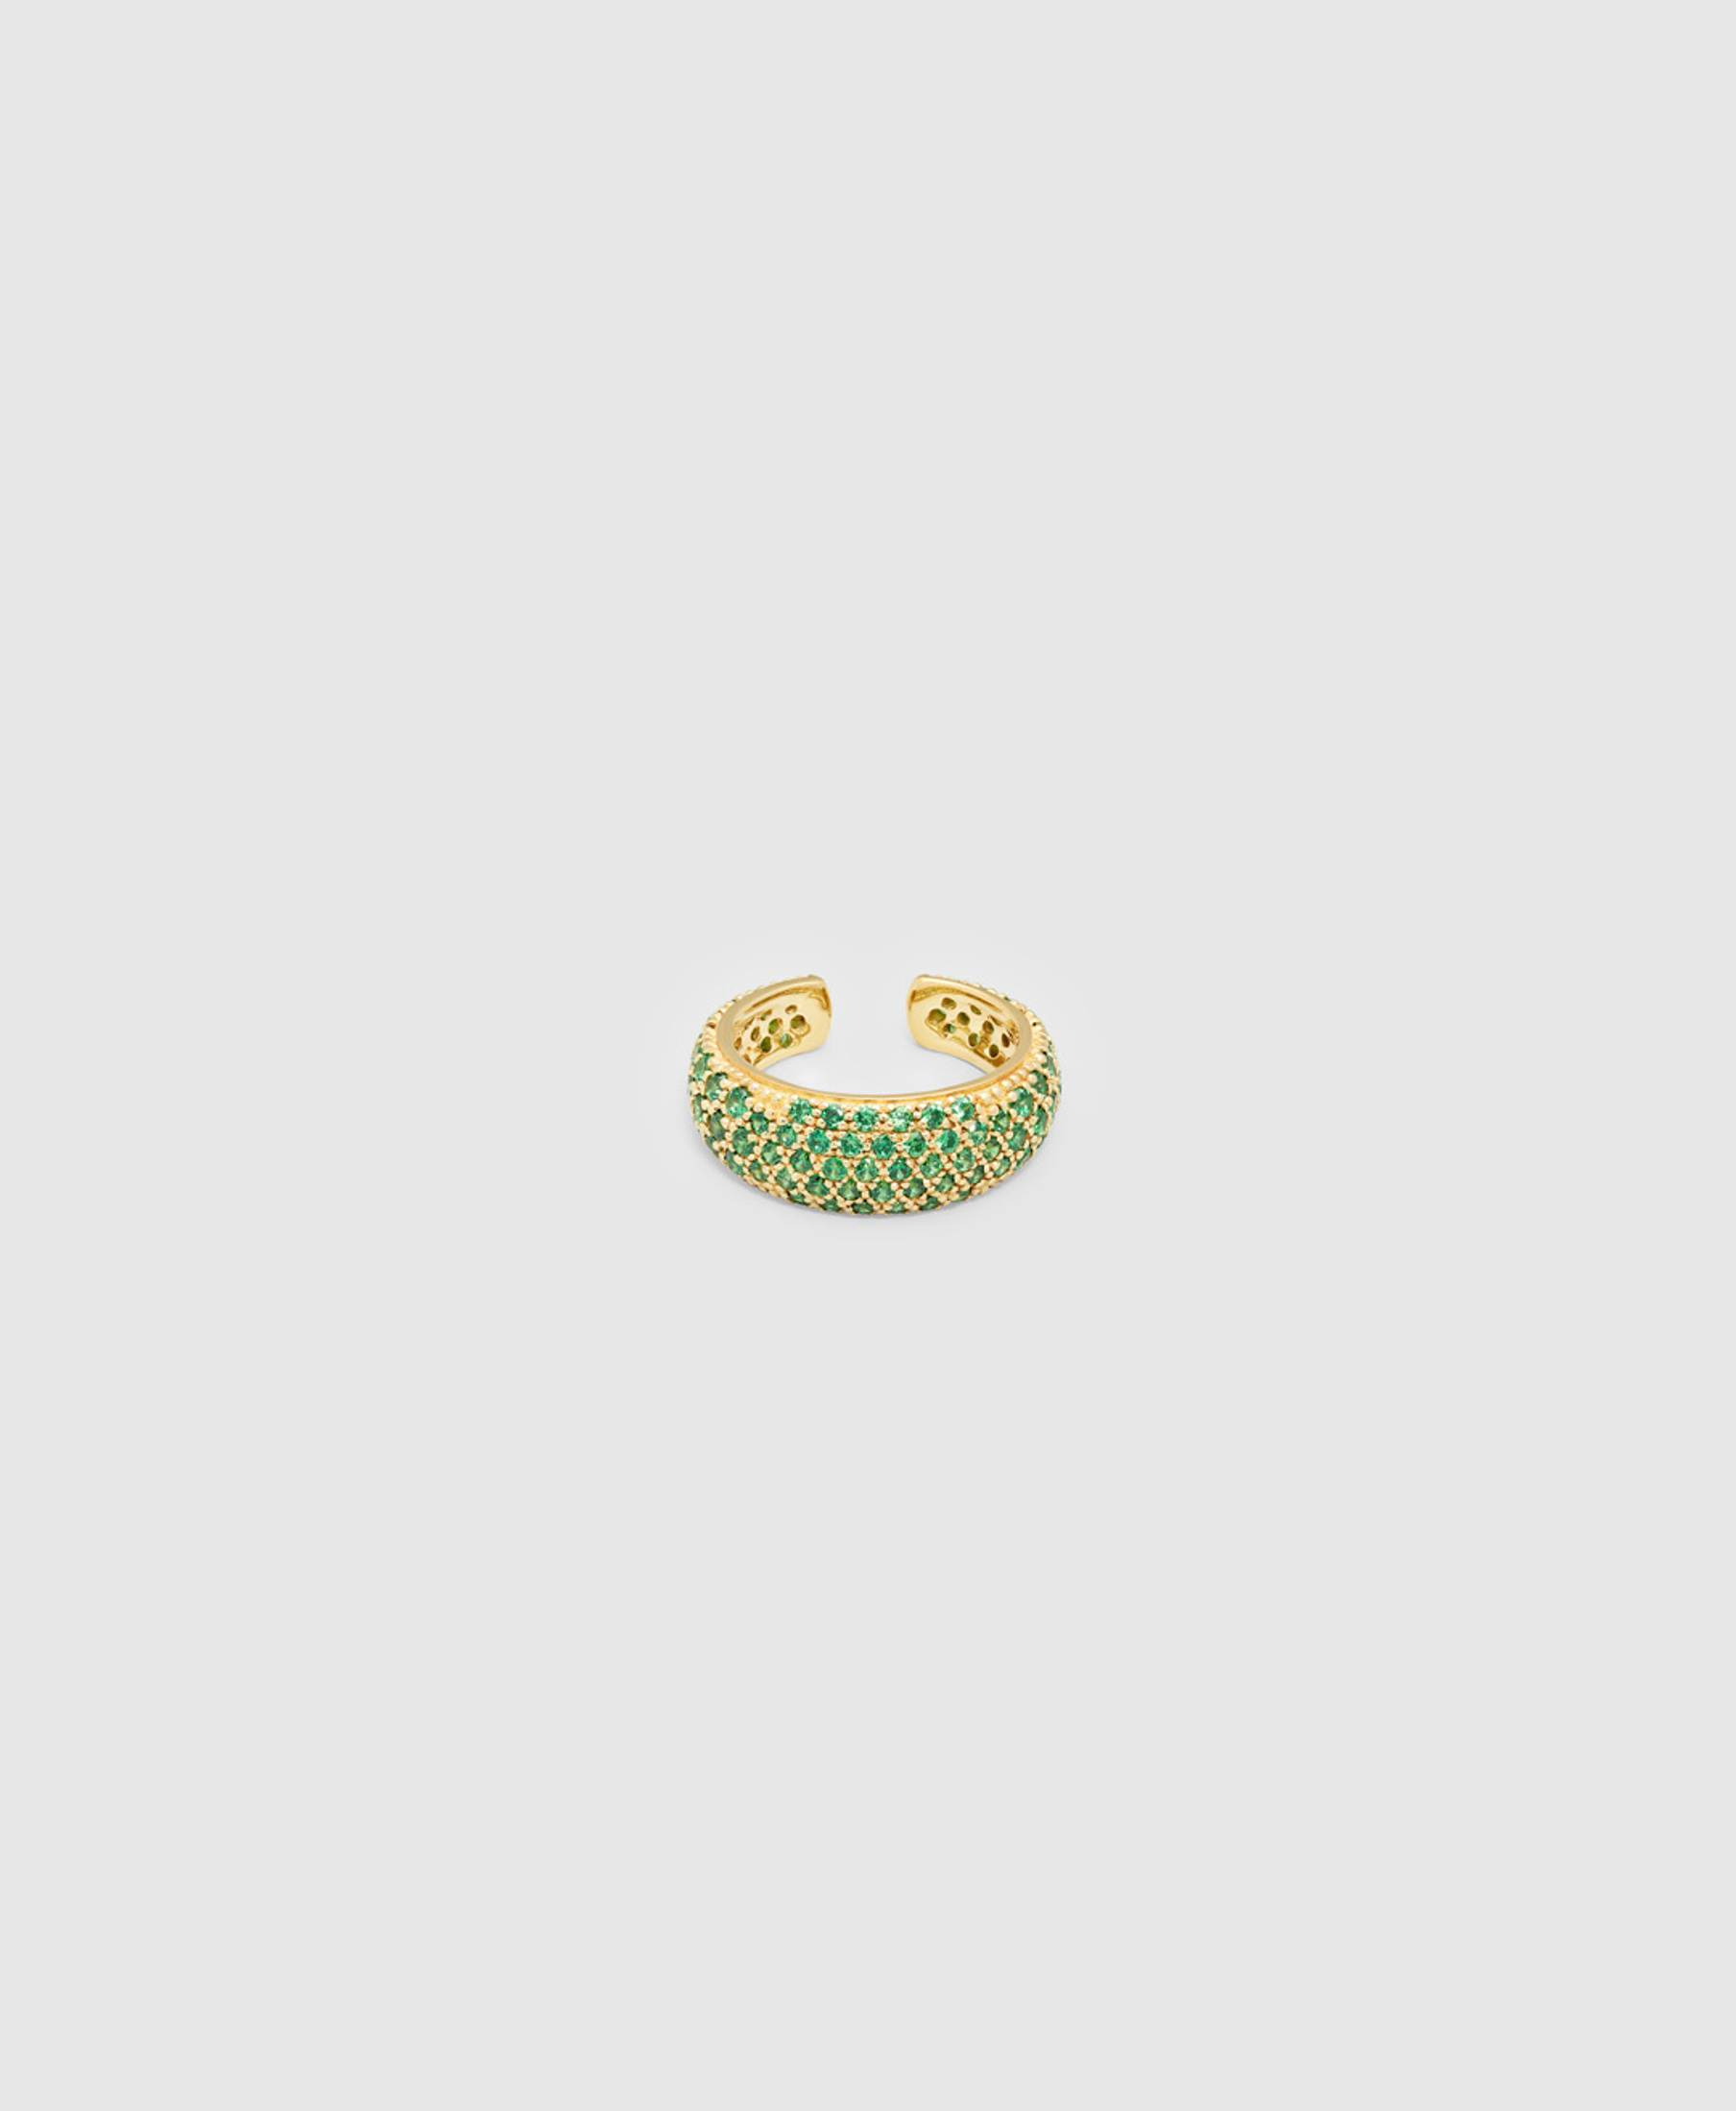 Ear Cuff Thick Forrest Green Gold